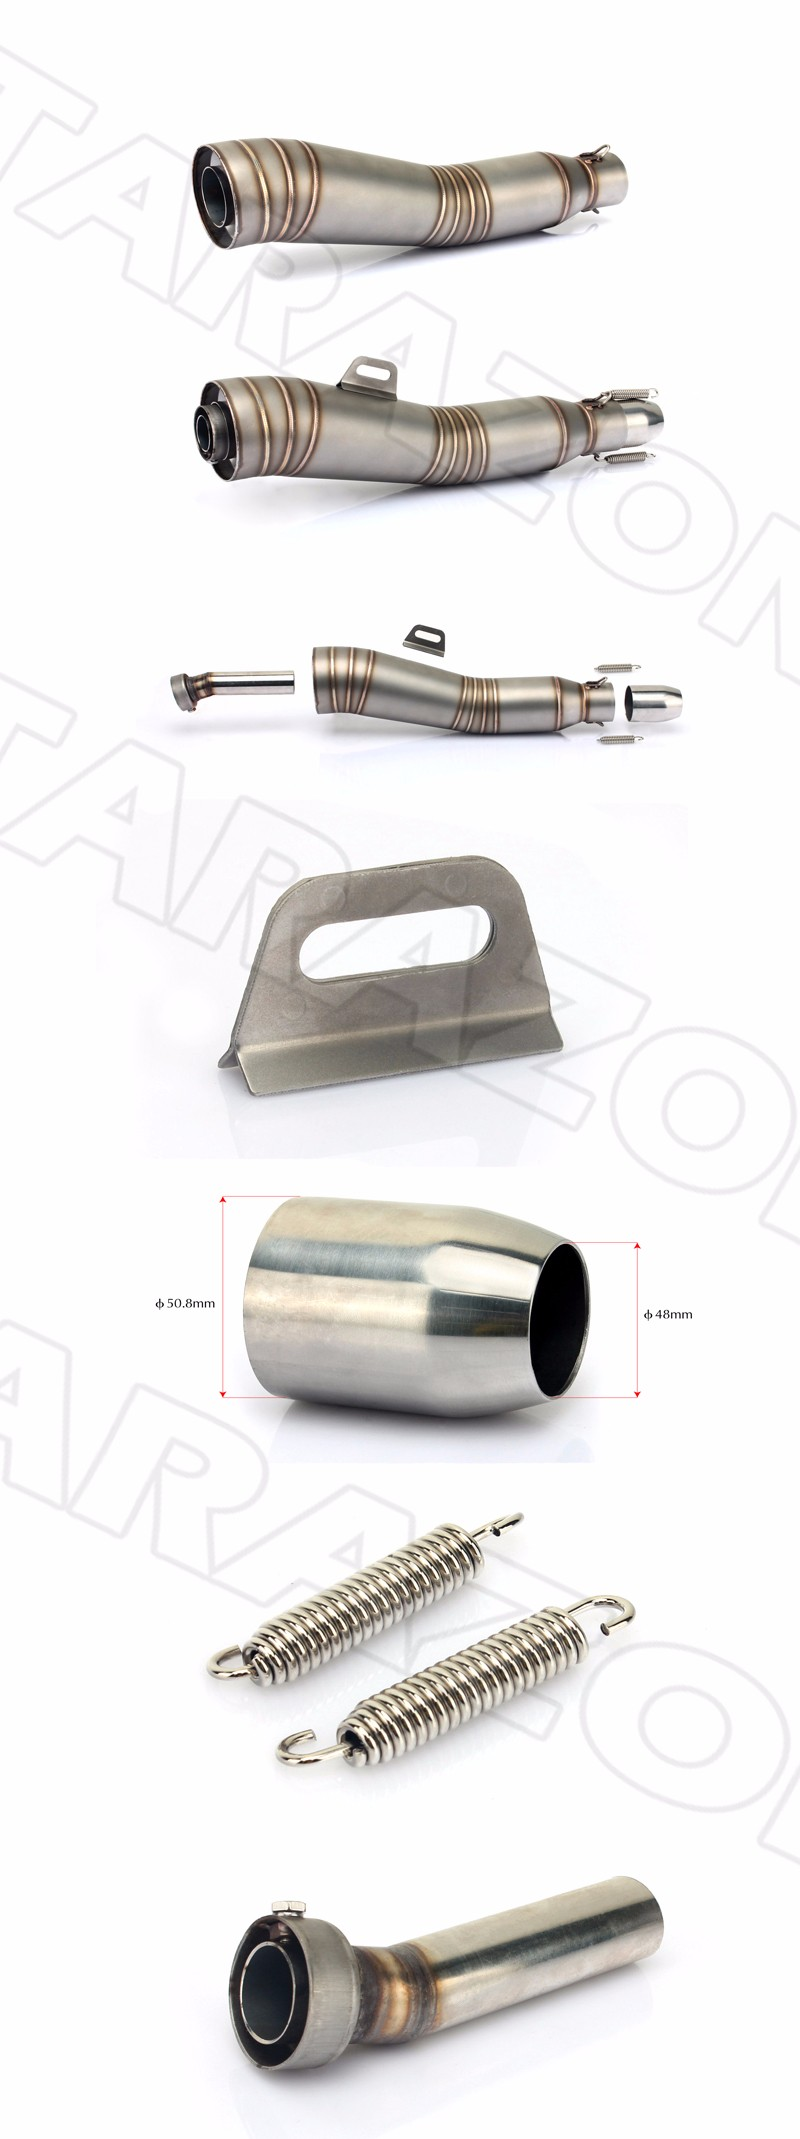 Hand Welding Universal Motorcycle Exhaust Mufflers For Sale